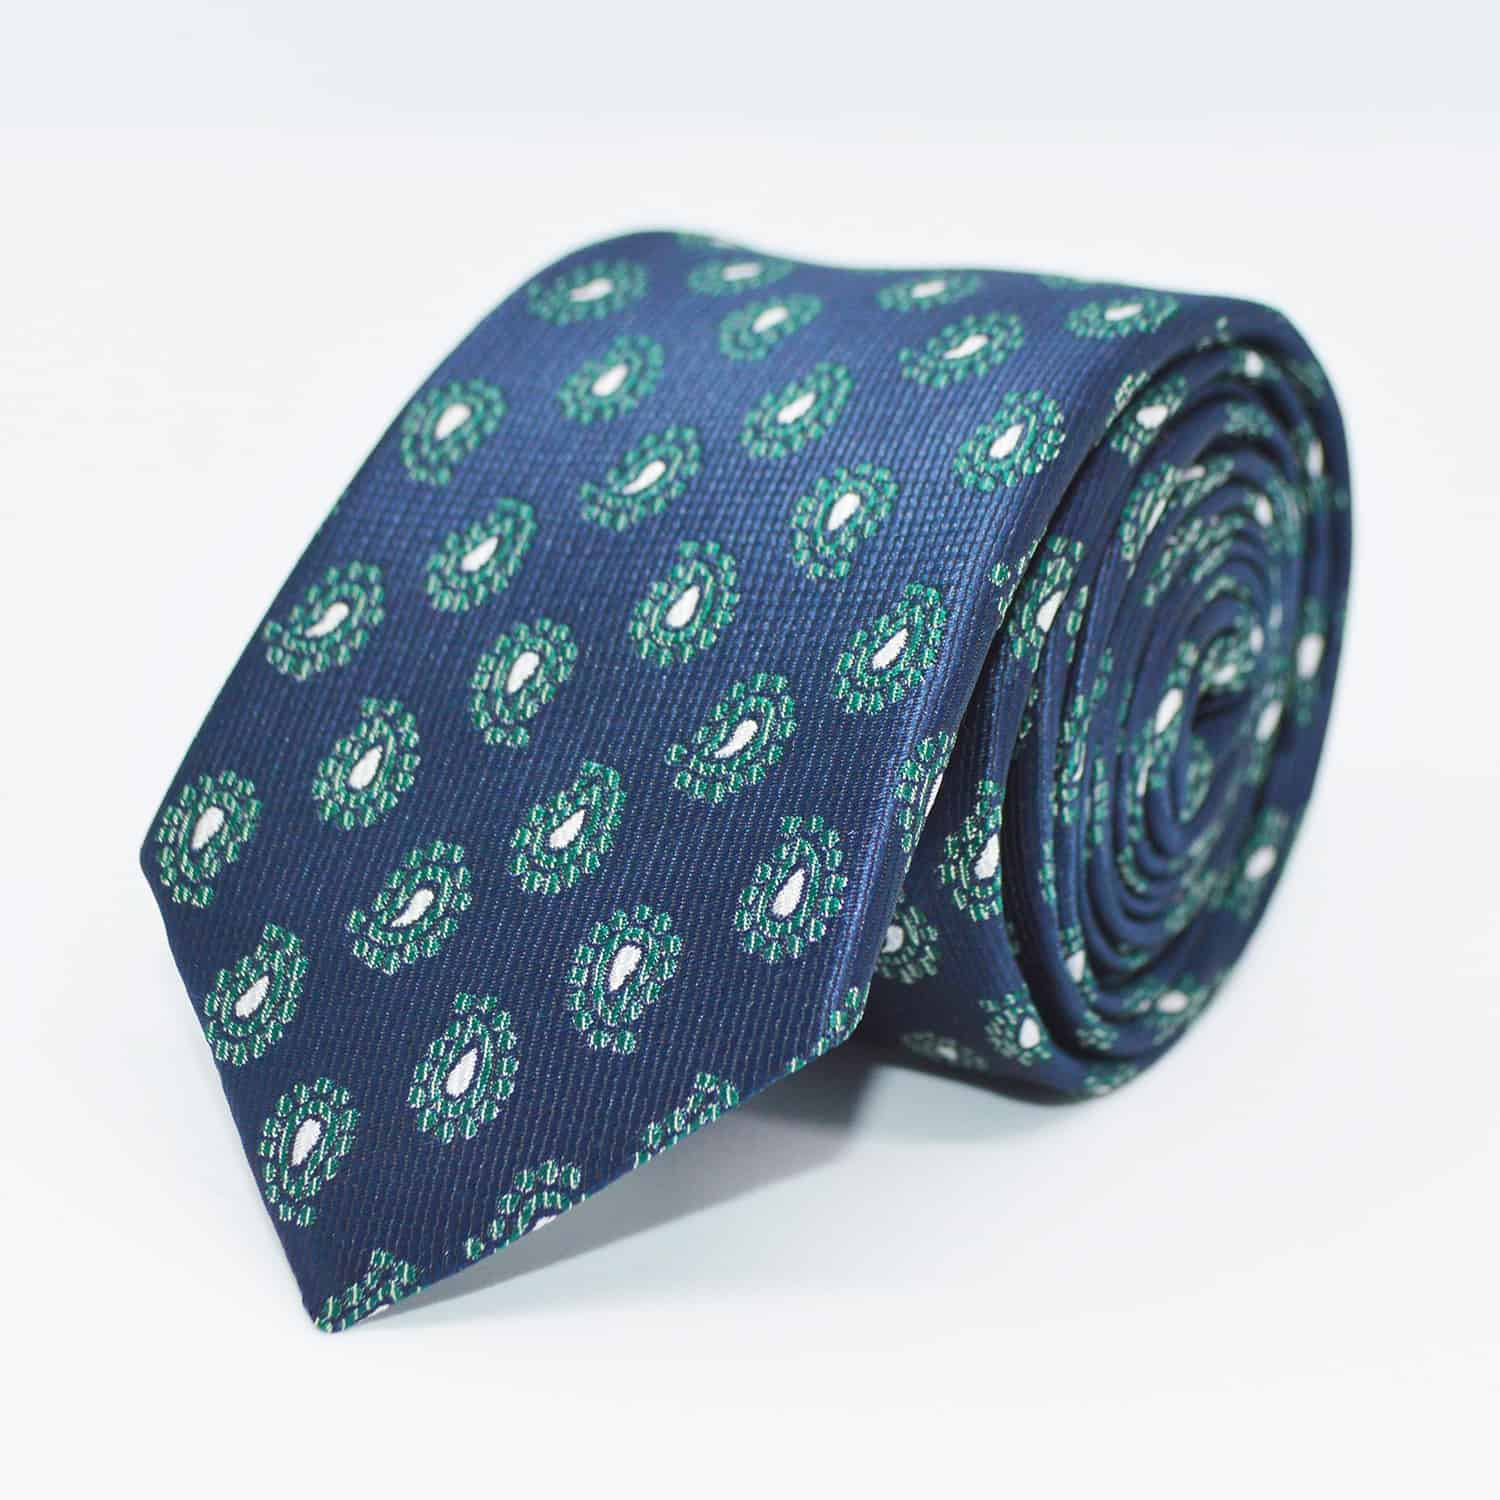 Tie blue/green paisley front